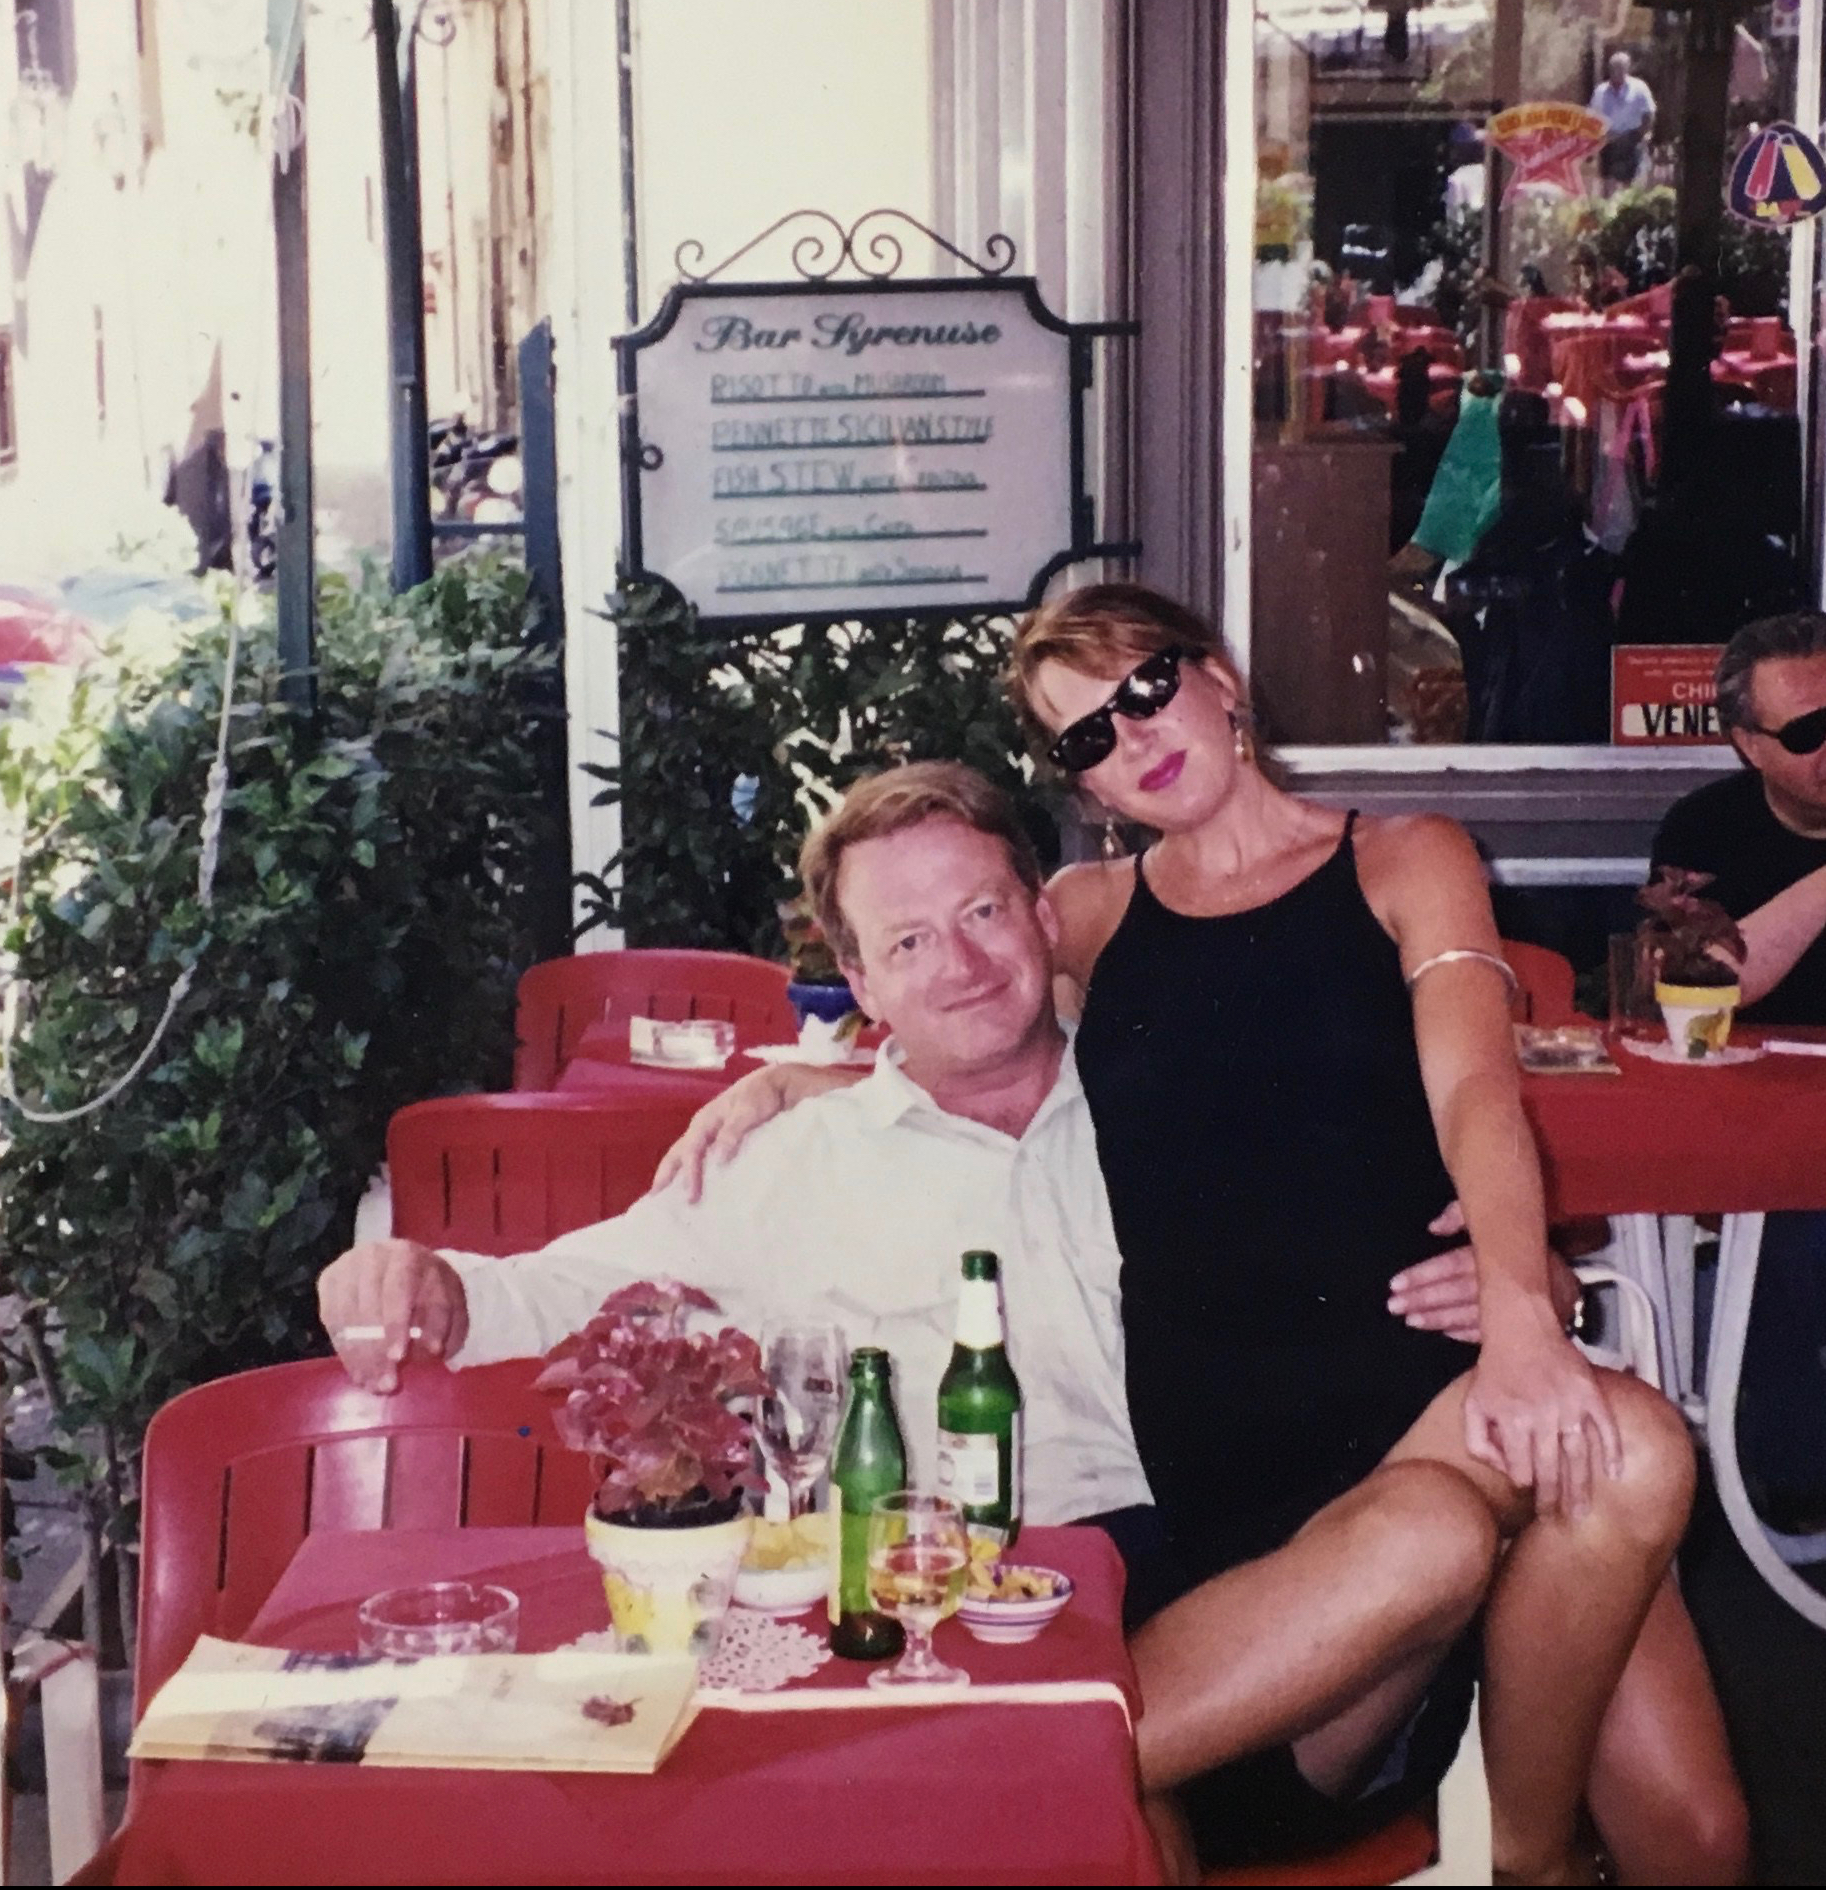 image of J. Wilder Bill with her spouse in Italy